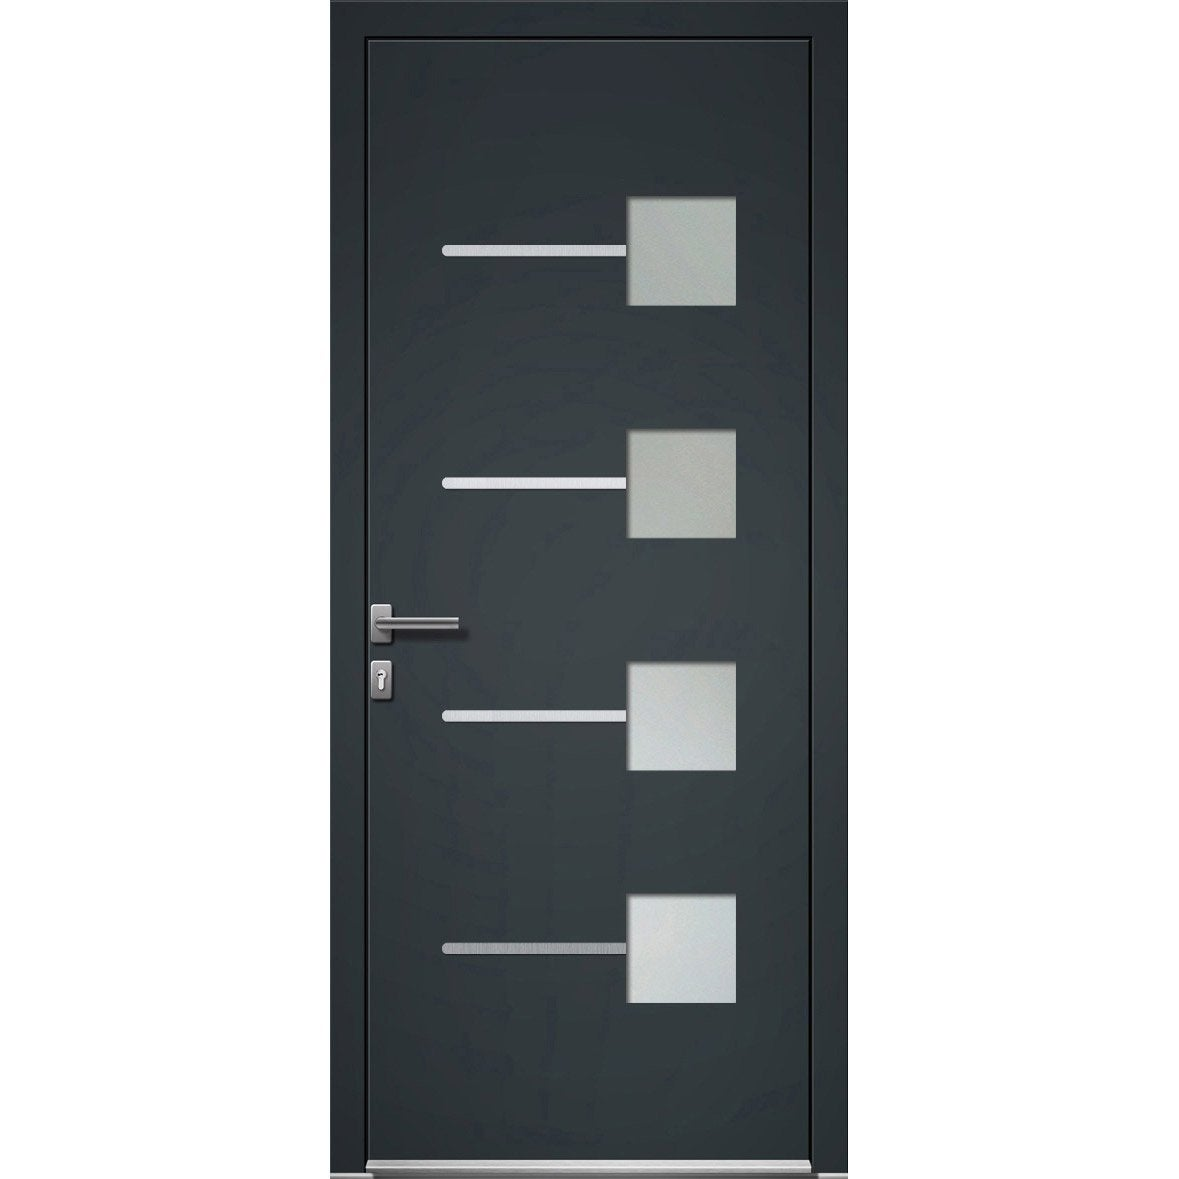 porte d 39 entr e aluminium soria artens poussant gauche x cm leroy merlin. Black Bedroom Furniture Sets. Home Design Ideas